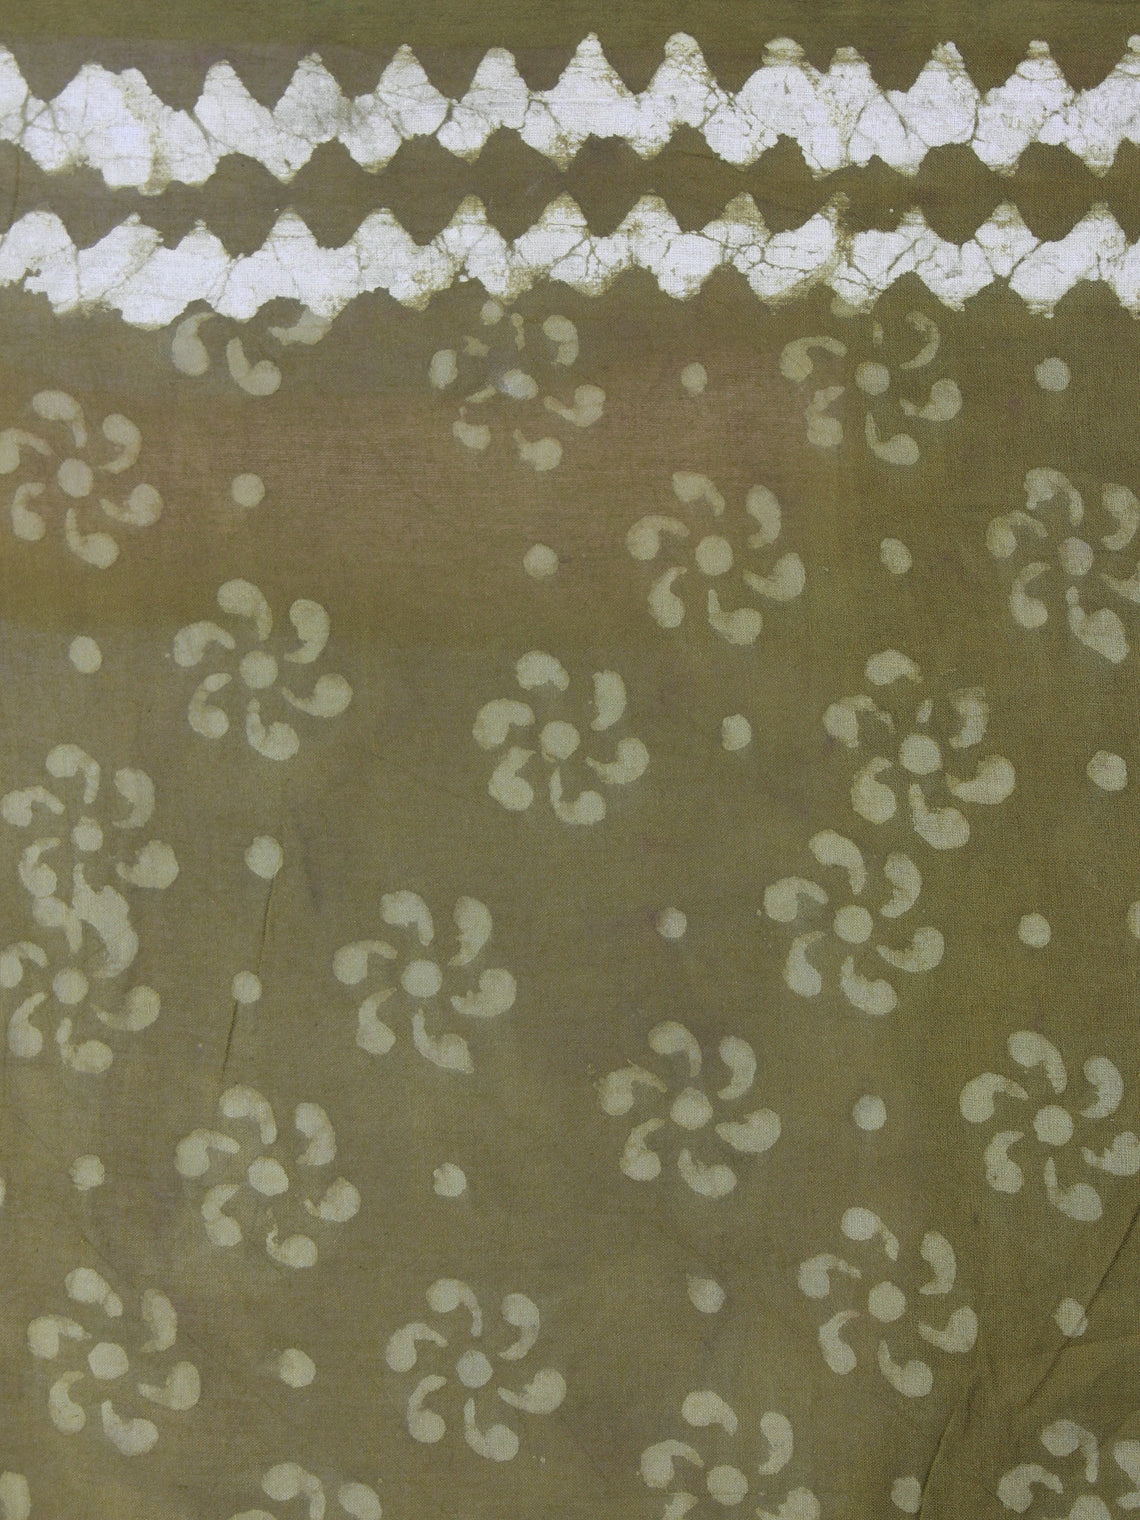 Olive Green White Hand Block Printed in Natural Colors Cotton Mul Saree - S03170420